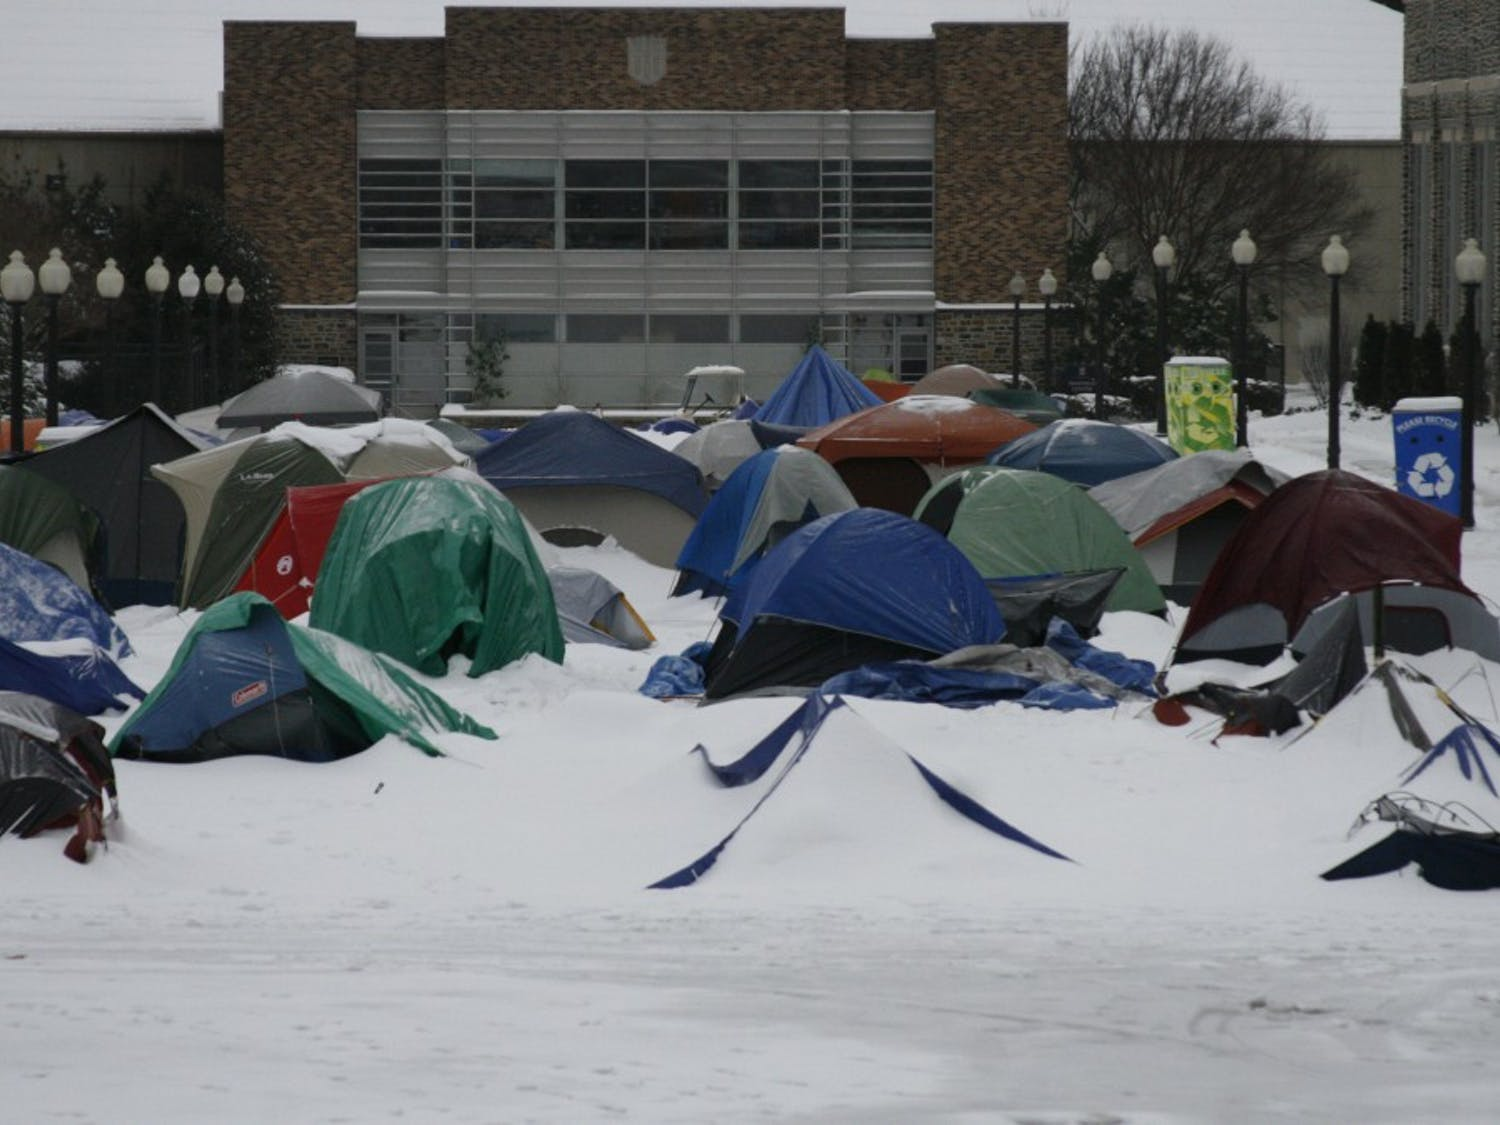 The newly pitched tents of the Cameron Crazies were buried in snow from the storm that hit Duke's campus on Saturday, January 30, 2010.